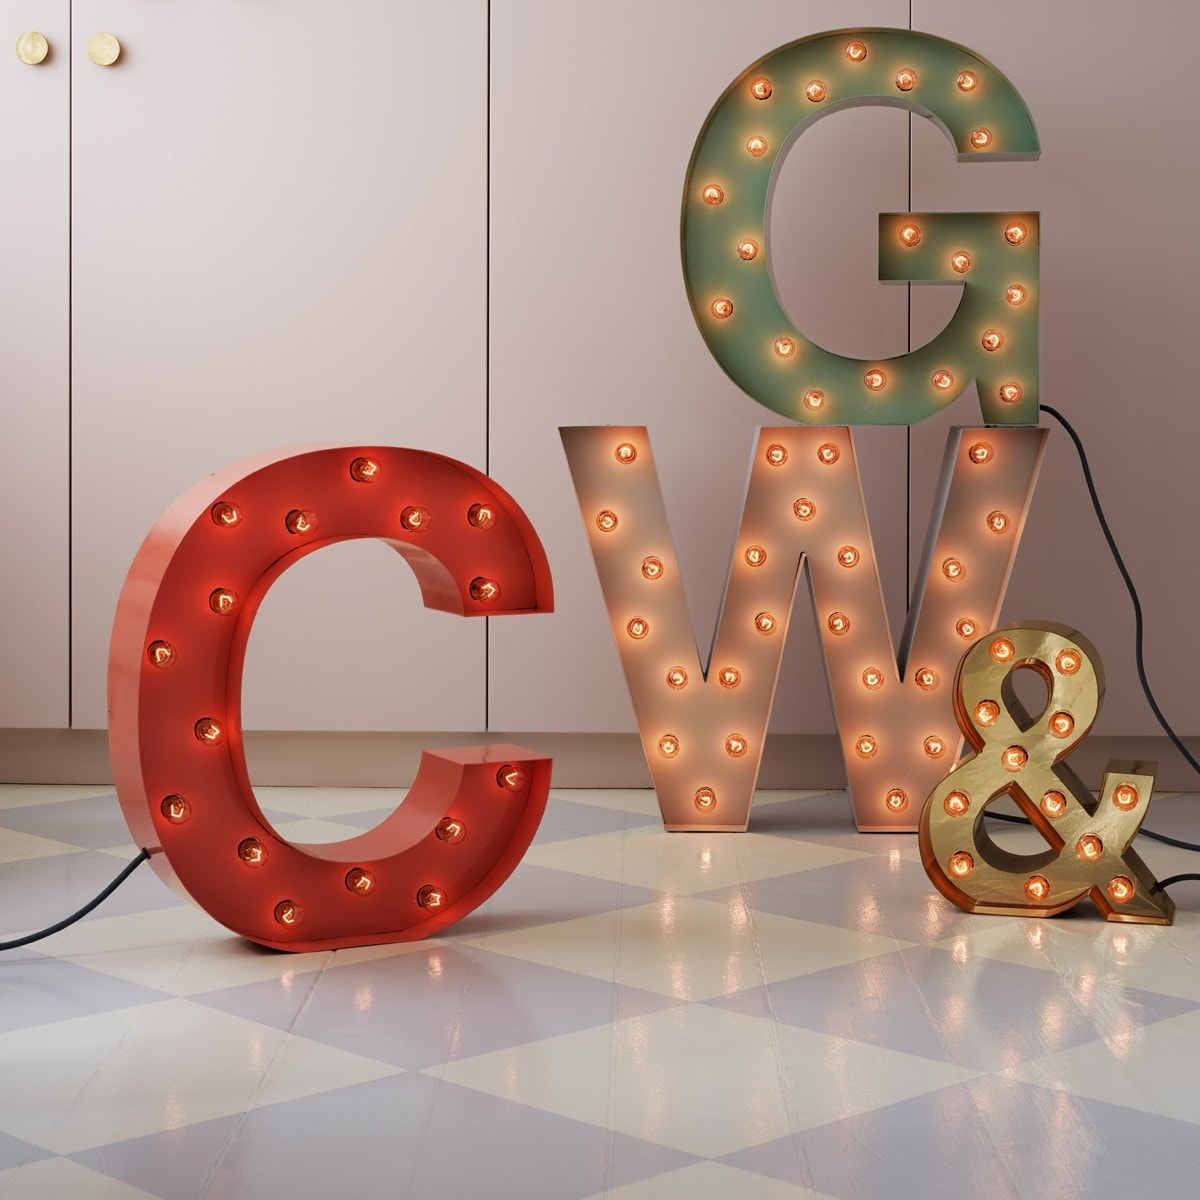 Cirkuslampan - Shop Original letter lights